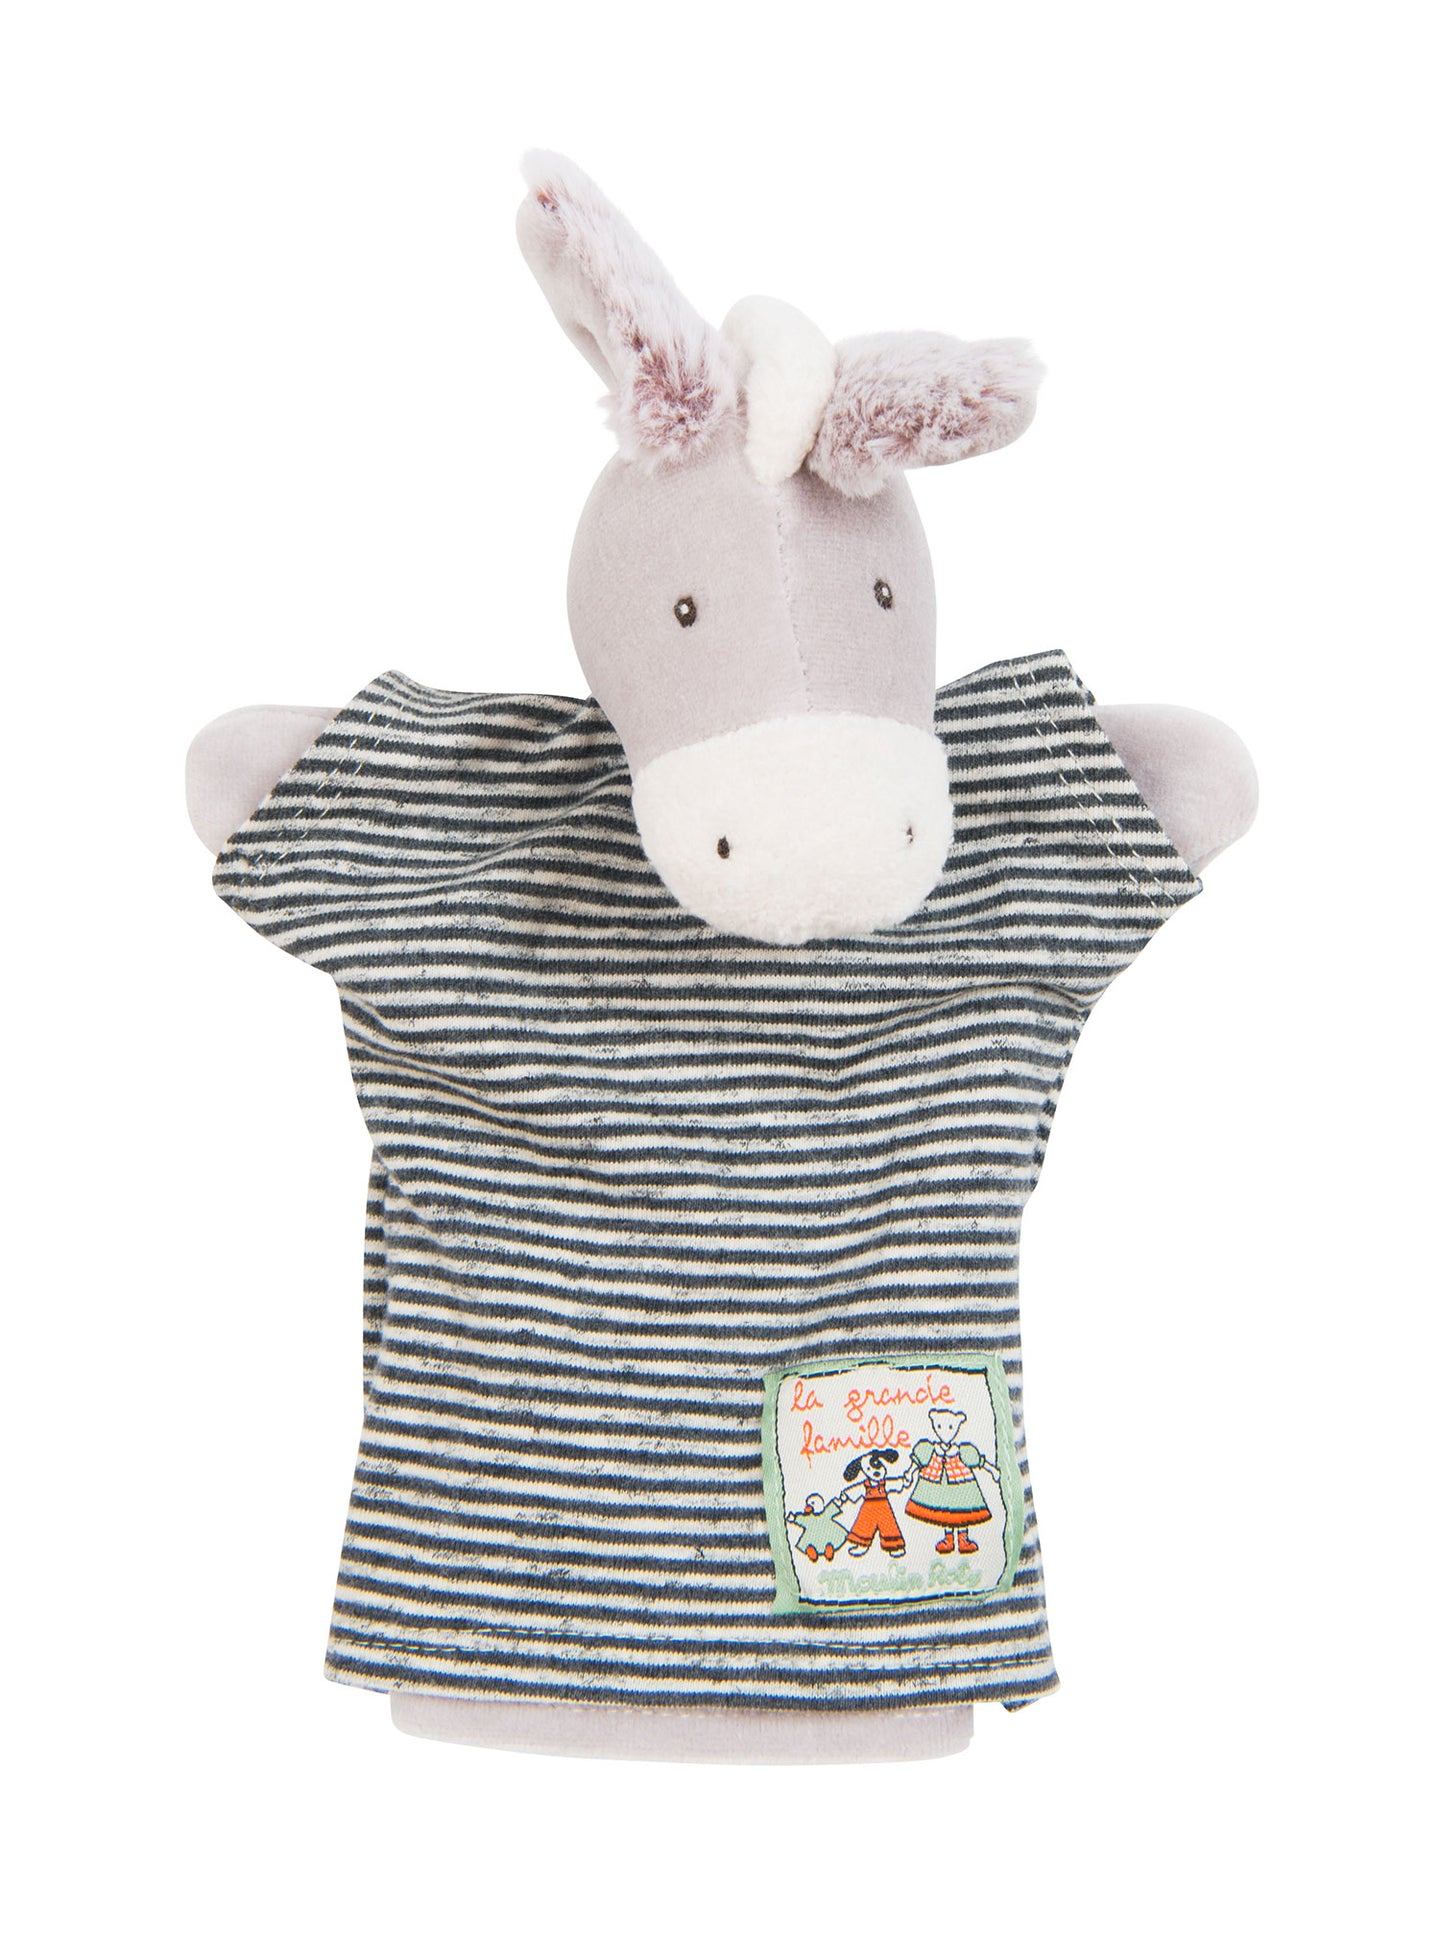 HAND PUPPET BARNABÉ THE DONKEY